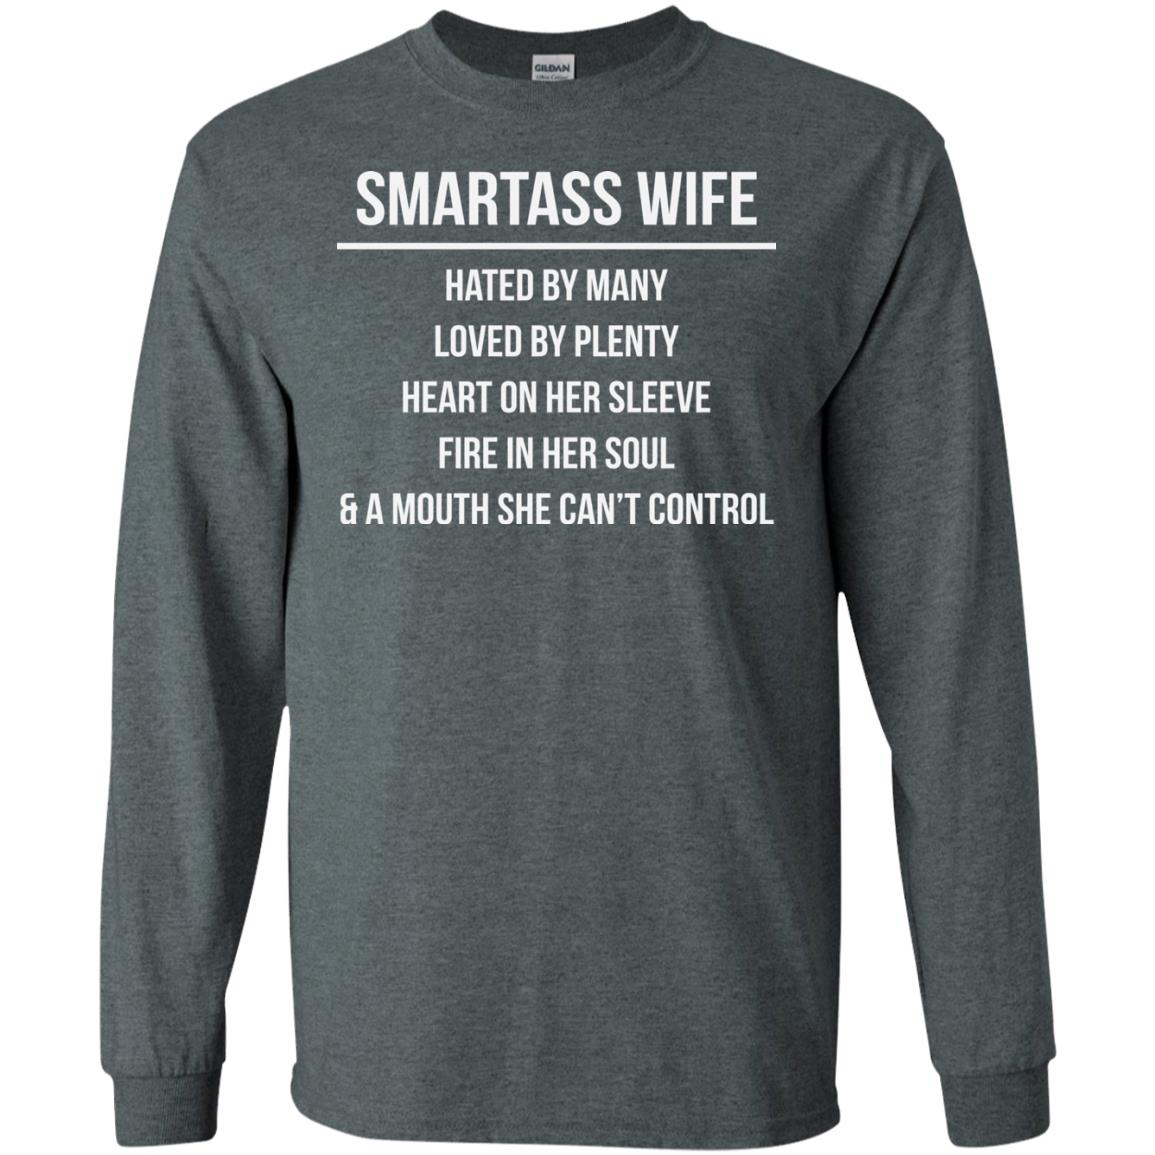 image 981 - Smartass Wife Shirt: Hated By Many Loved By Plenty